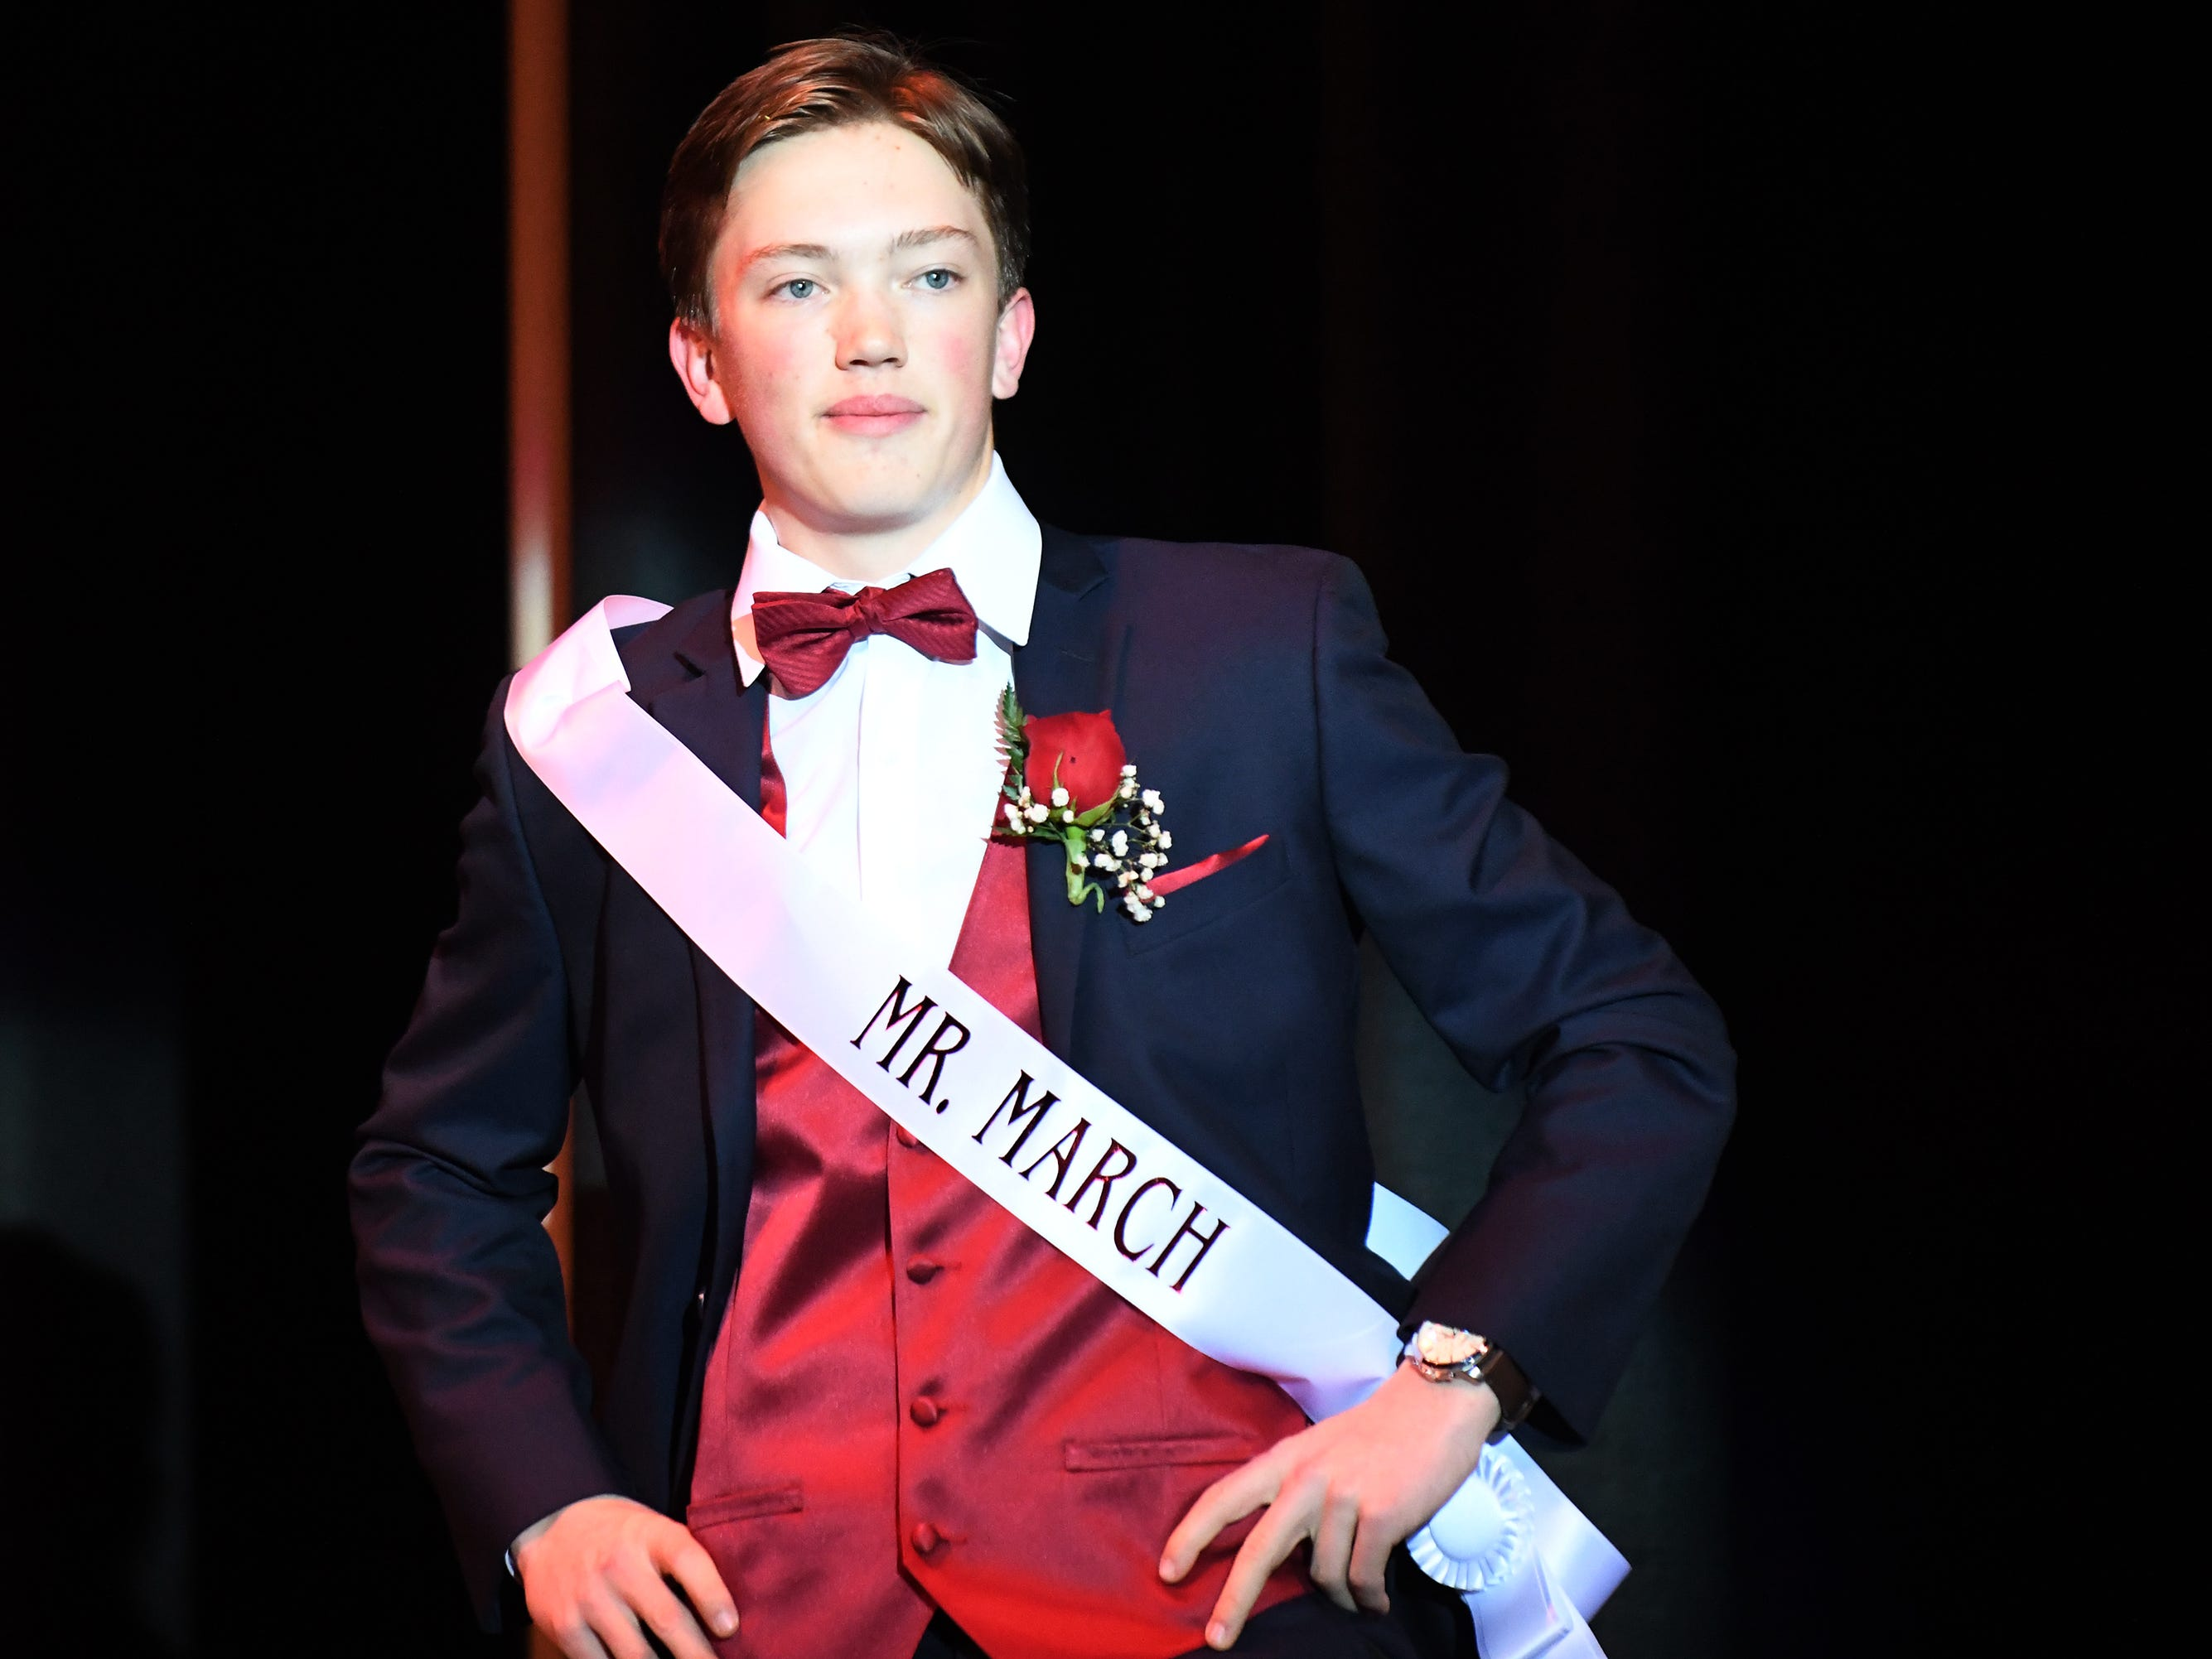 """Brandon """"Bubba"""" Beyer shows off his formal wear during Mr. Vineland 2019 at Vineland High School on Thursday, January 10."""